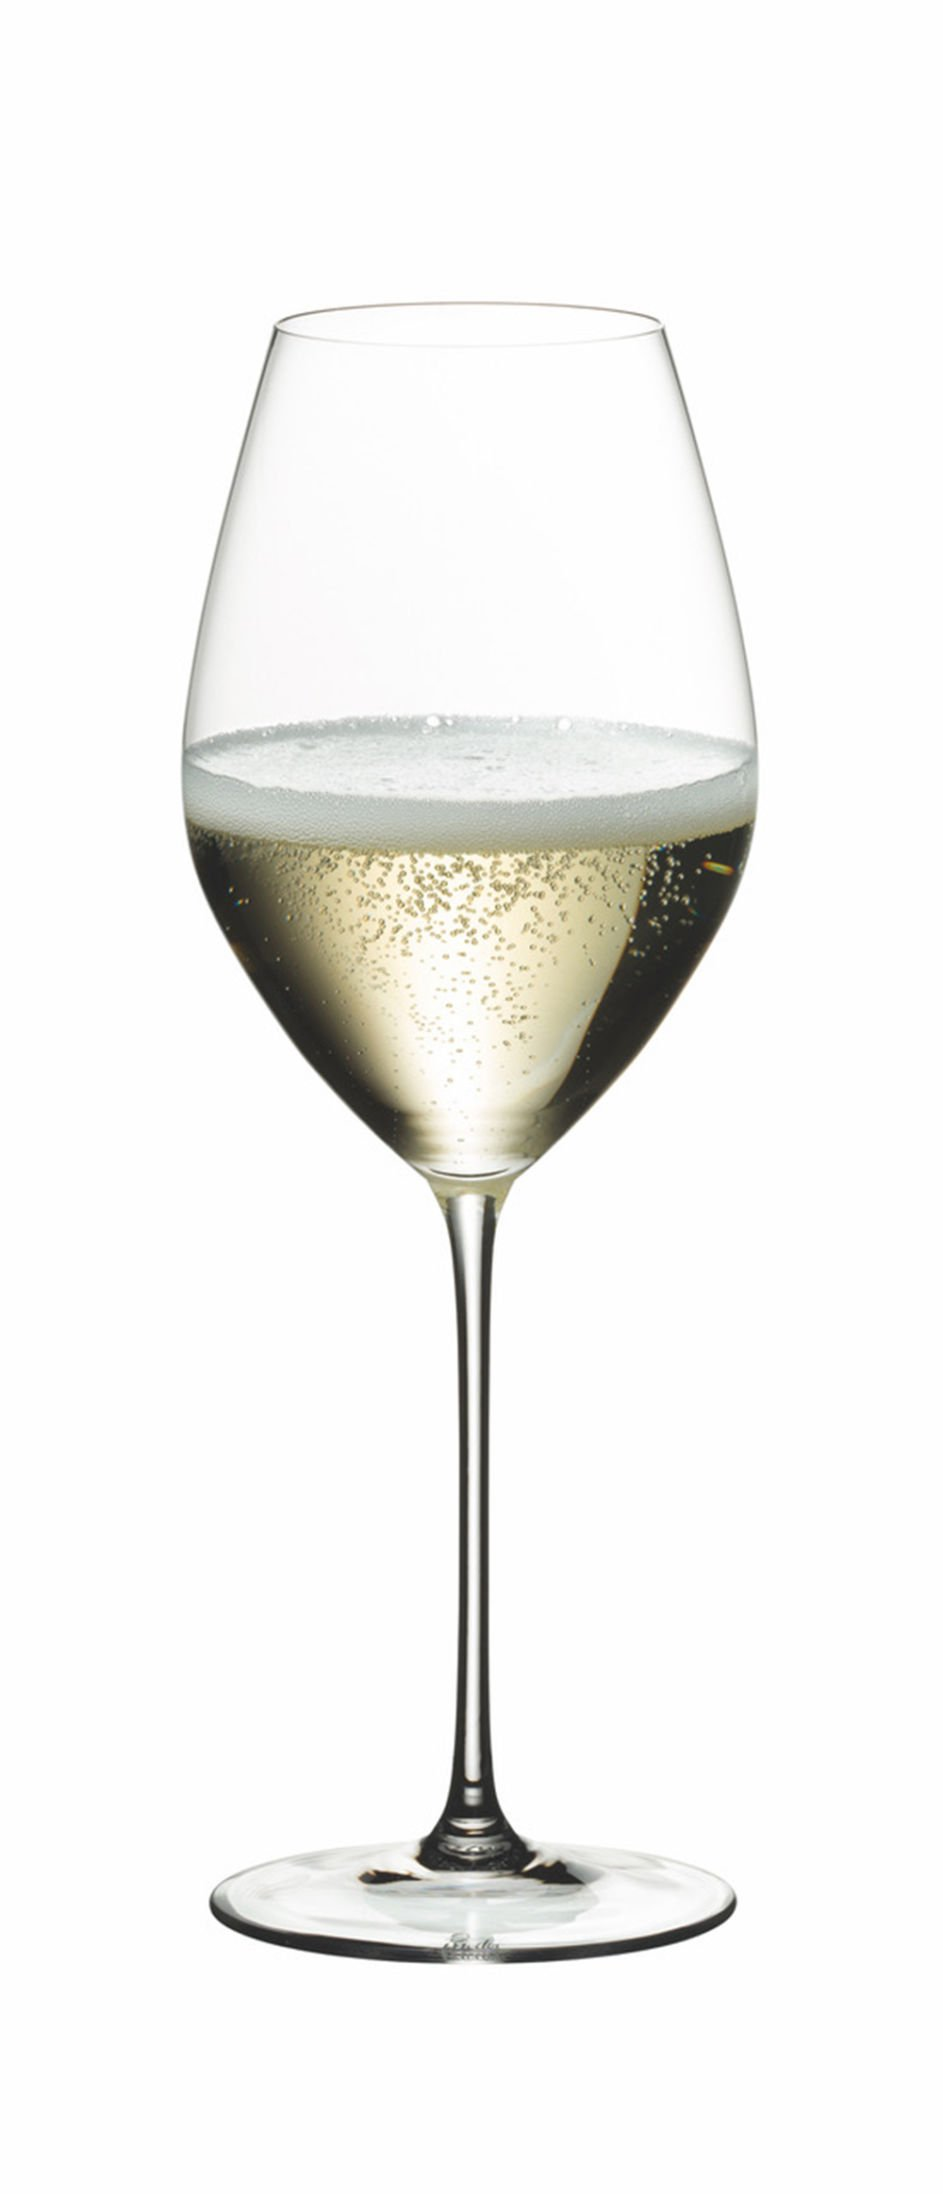 A toast holidays: Stemware on your gift list?